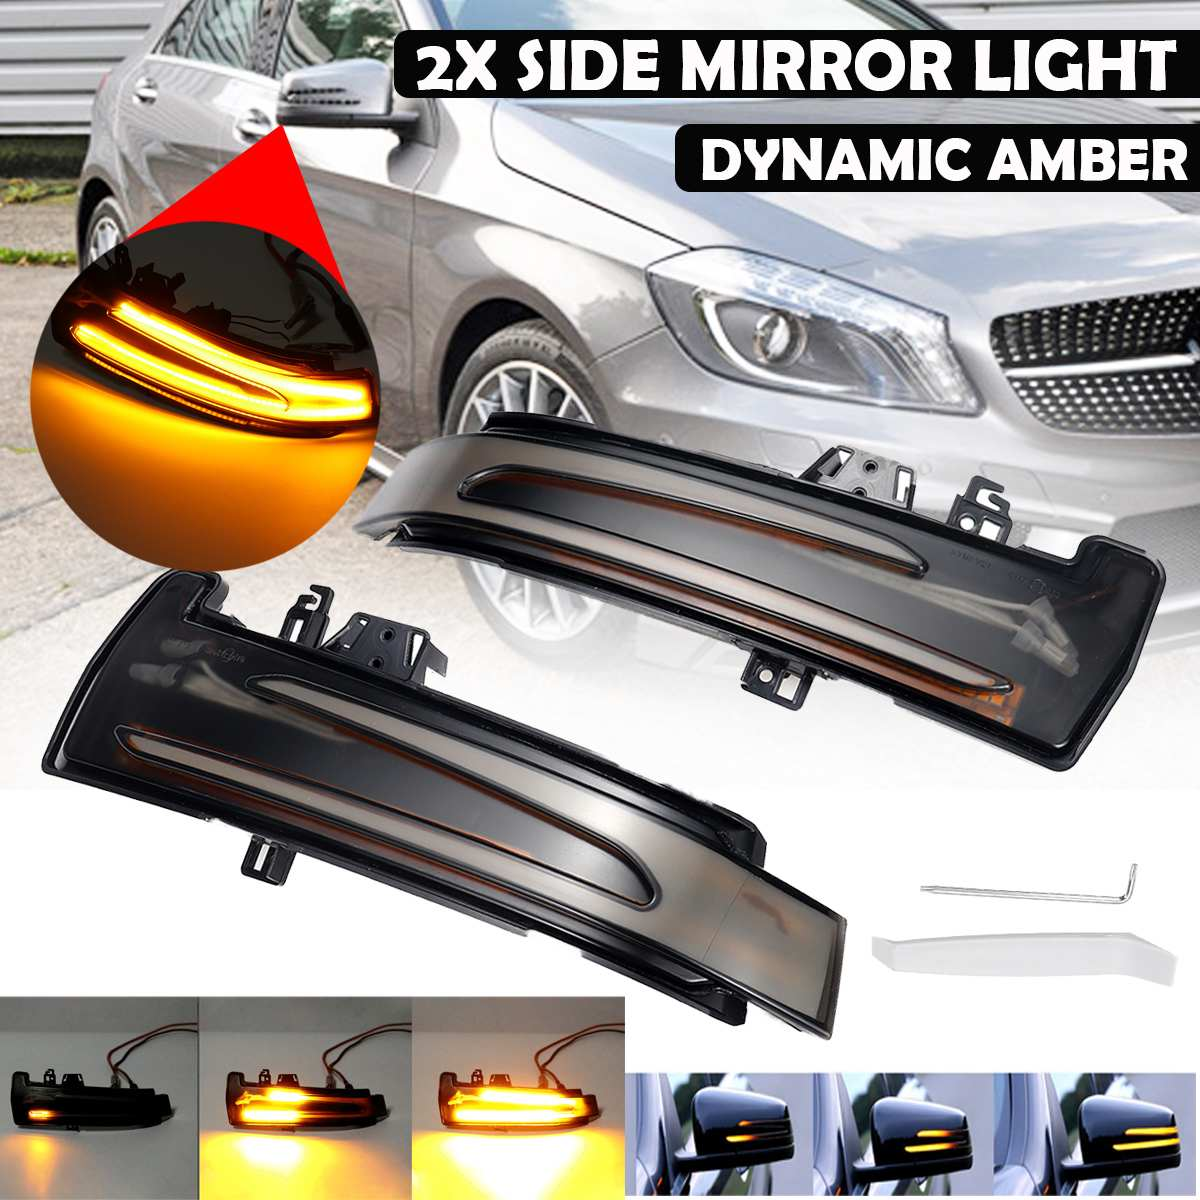 2pcs Flowing Turn Signal Light LED Side Wing Rearview Mirror Dynamic Indicator Blinker For Mercedes For Benz A B S C E GLA GLK